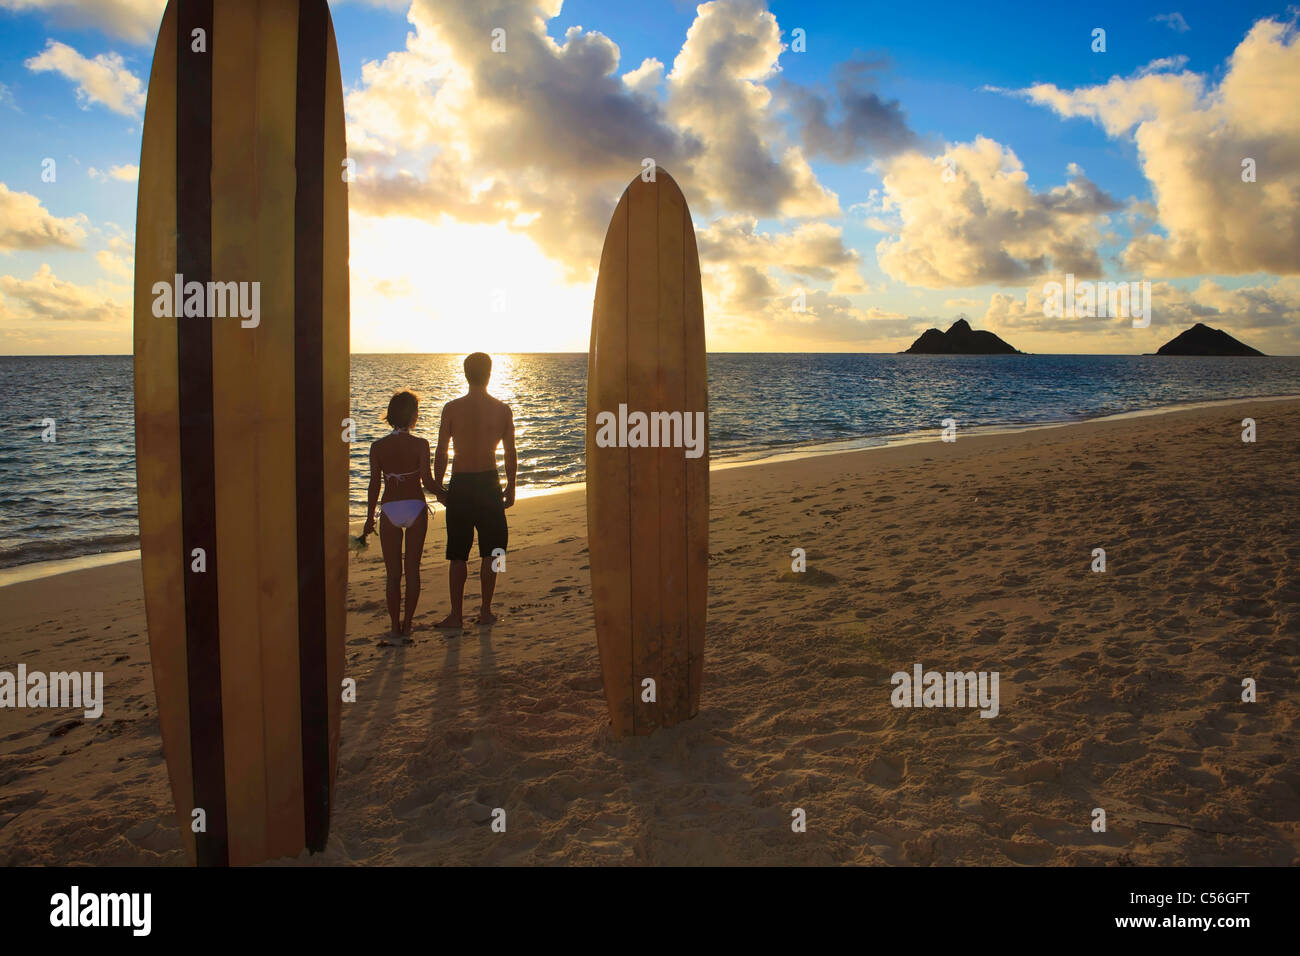 couple on the beach with their surfboards at sunrise in hawaii - Stock Image